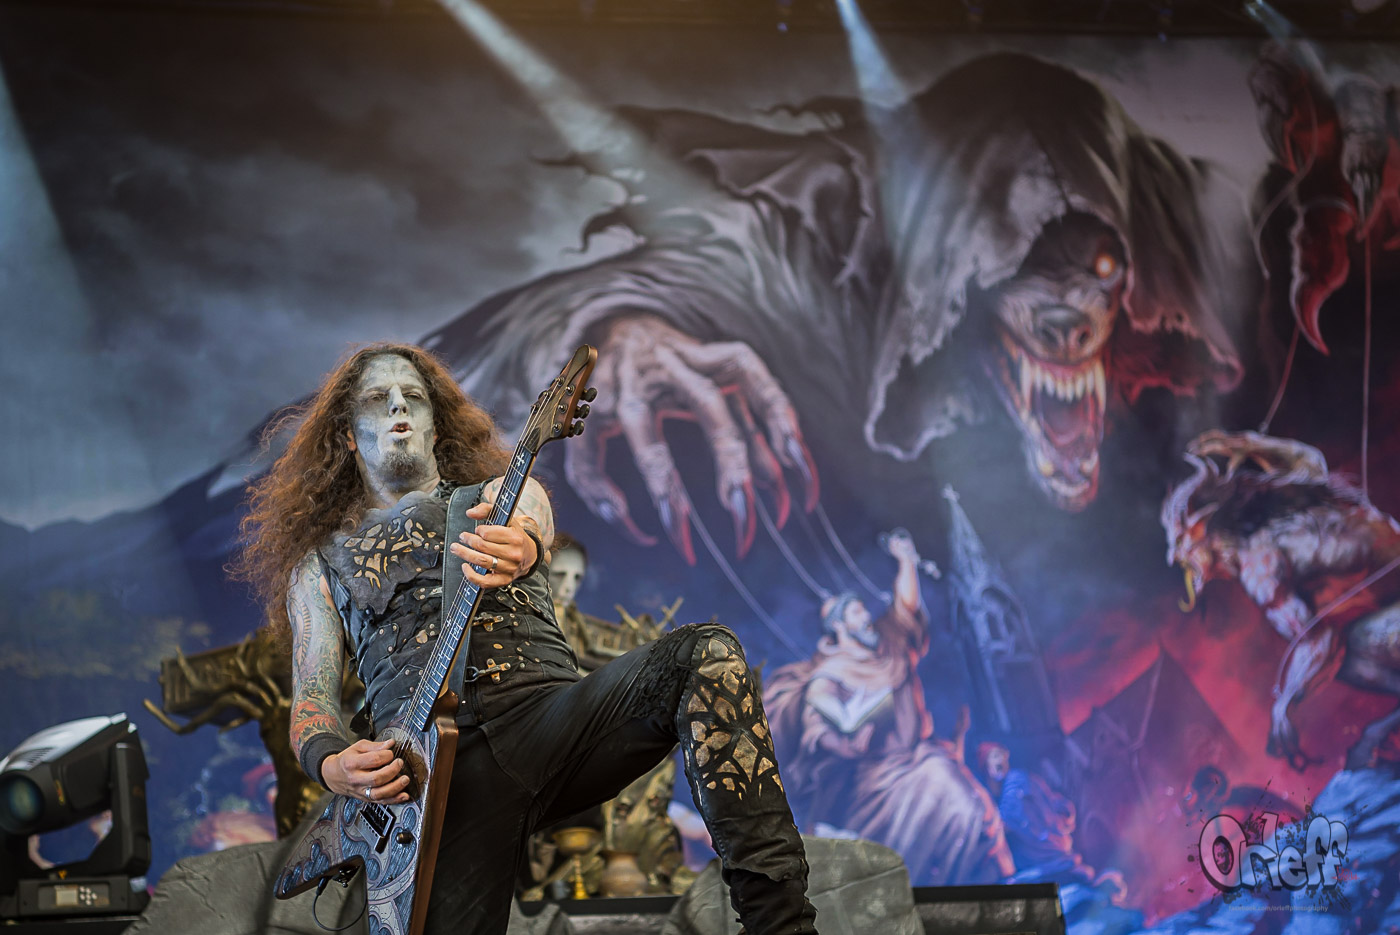 Powerwolf @ Nova Rock 2019